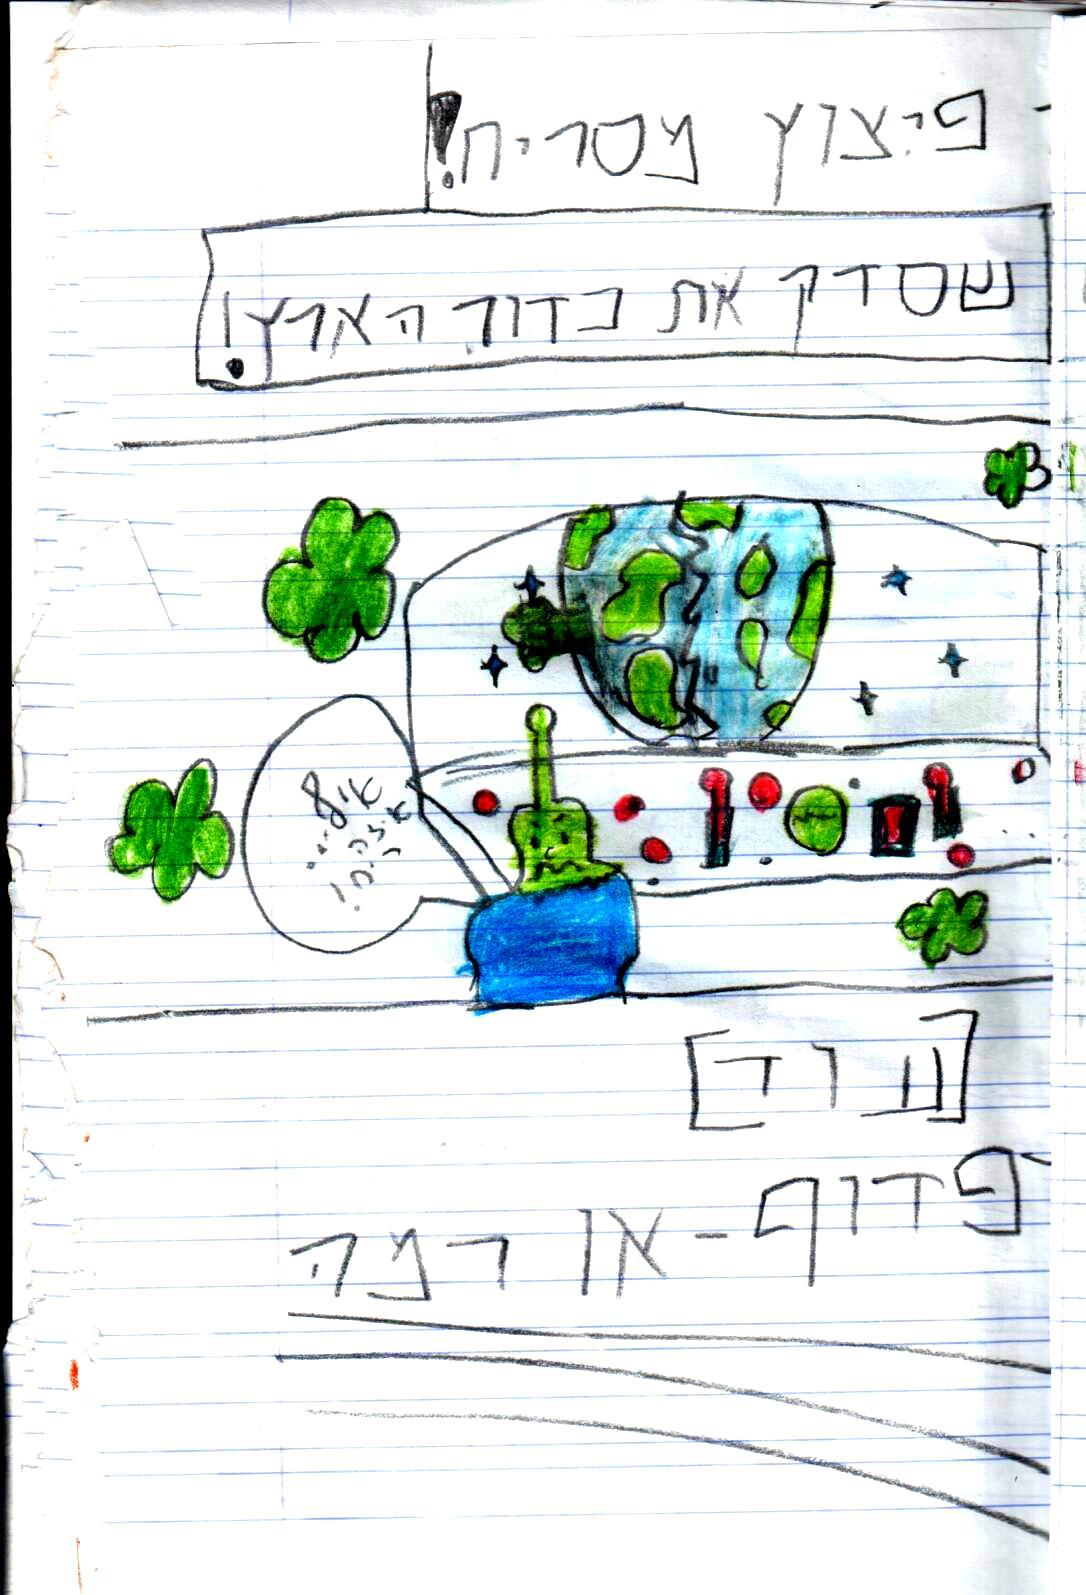 Artwork from the book - קפטן תחתונים by אילן  - Ourboox.com